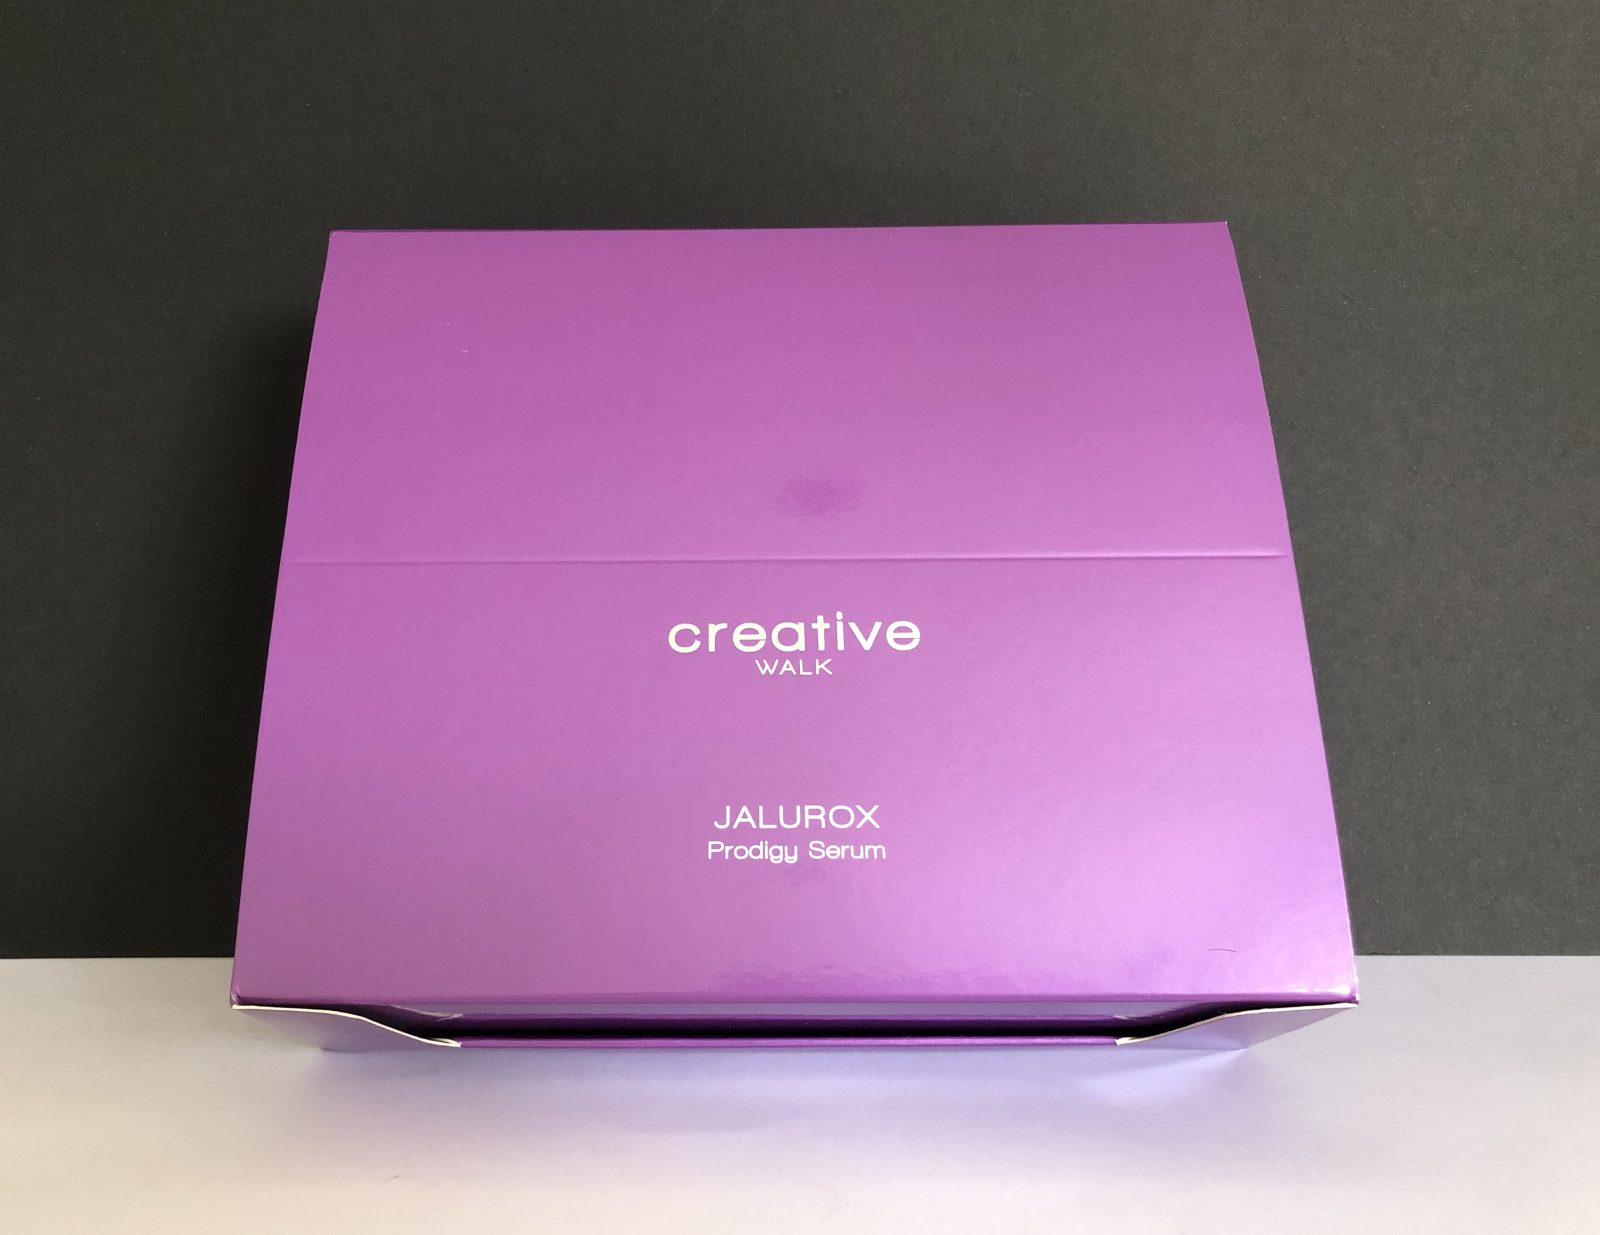 Creative Walk Jalurox Prodigy Serum